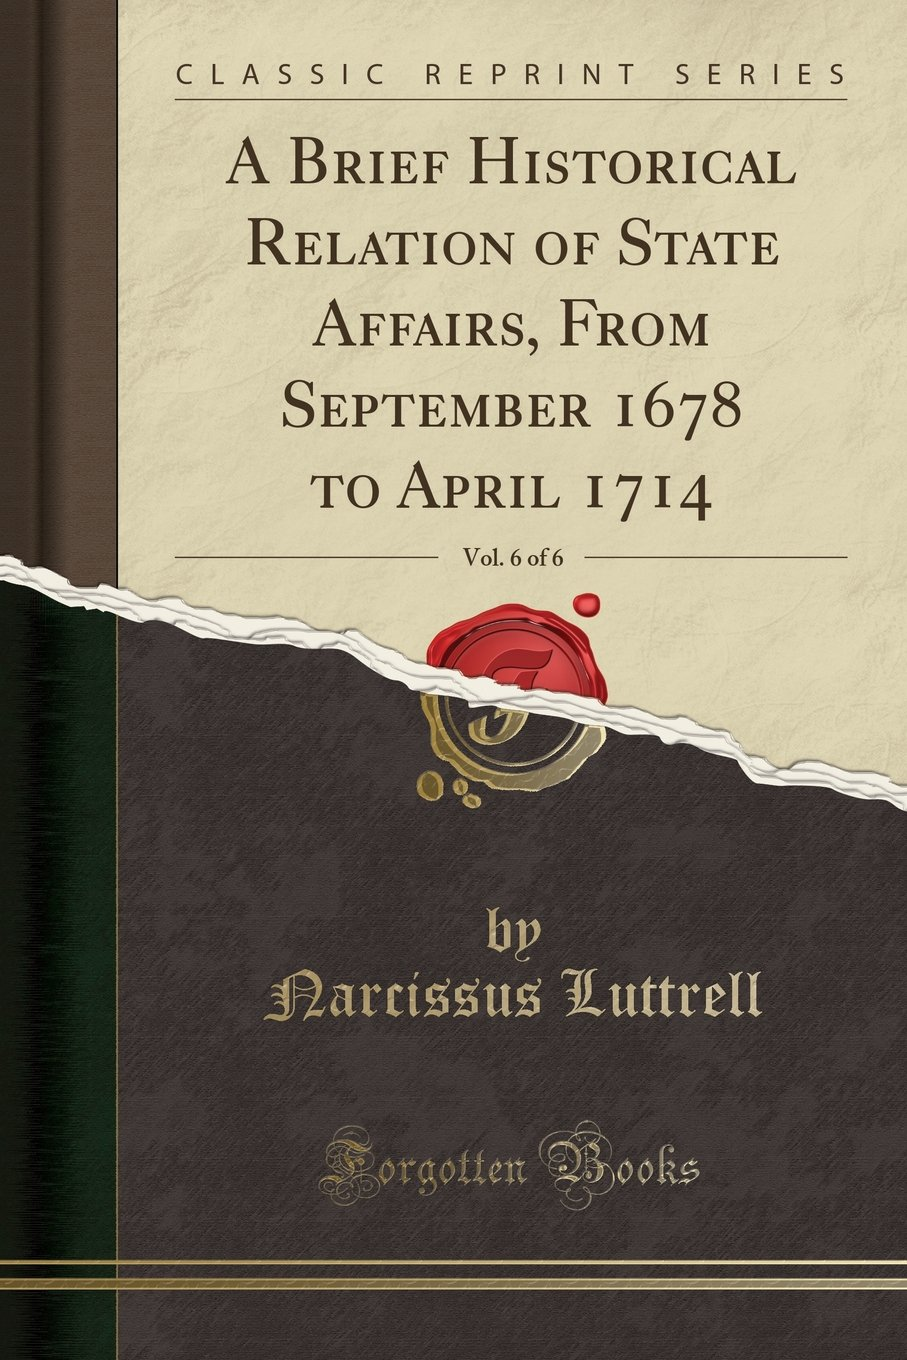 Download A Brief Historical Relation of State Affairs, From September 1678 to April 1714, Vol. 6 of 6 (Classic Reprint) pdf